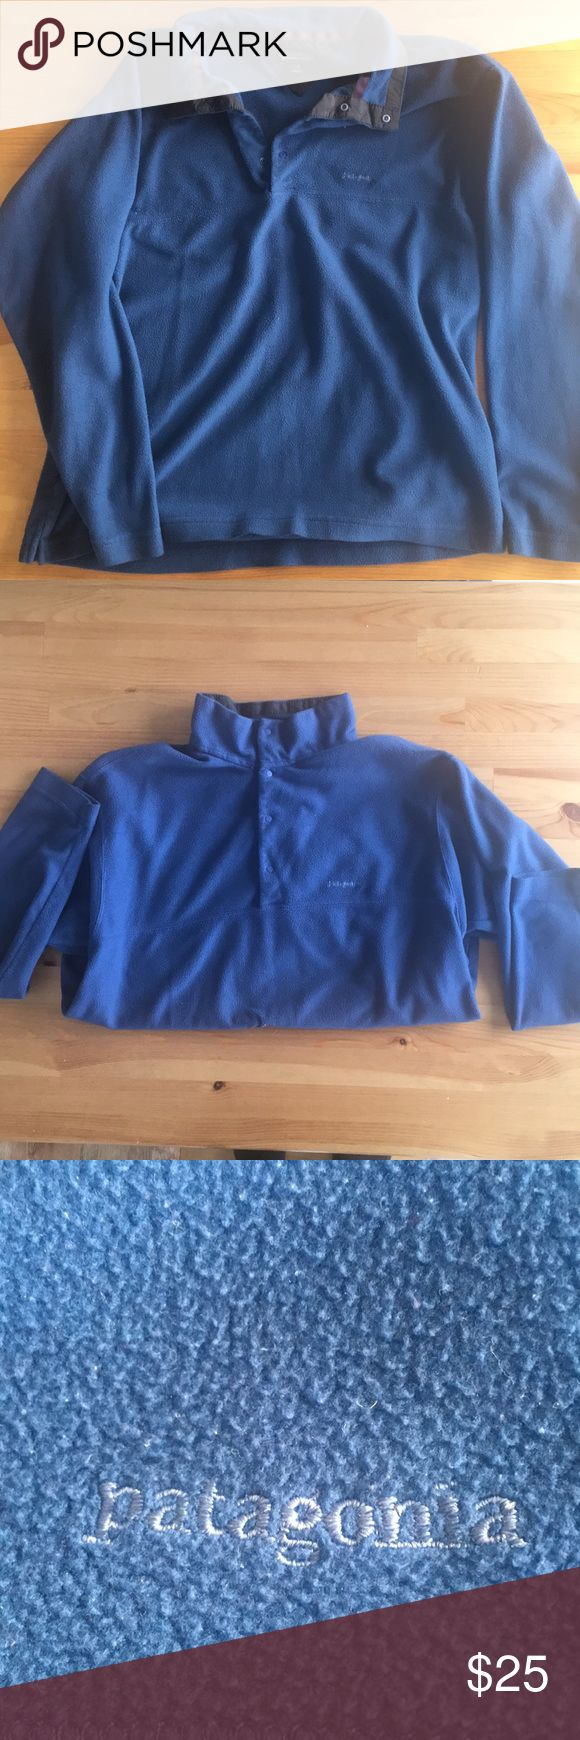 Patagonia fleece pullover Long sleeve and comfy. Navy blue, button snap. No defects Patagonia Tops Sweatshirts & Hoodies